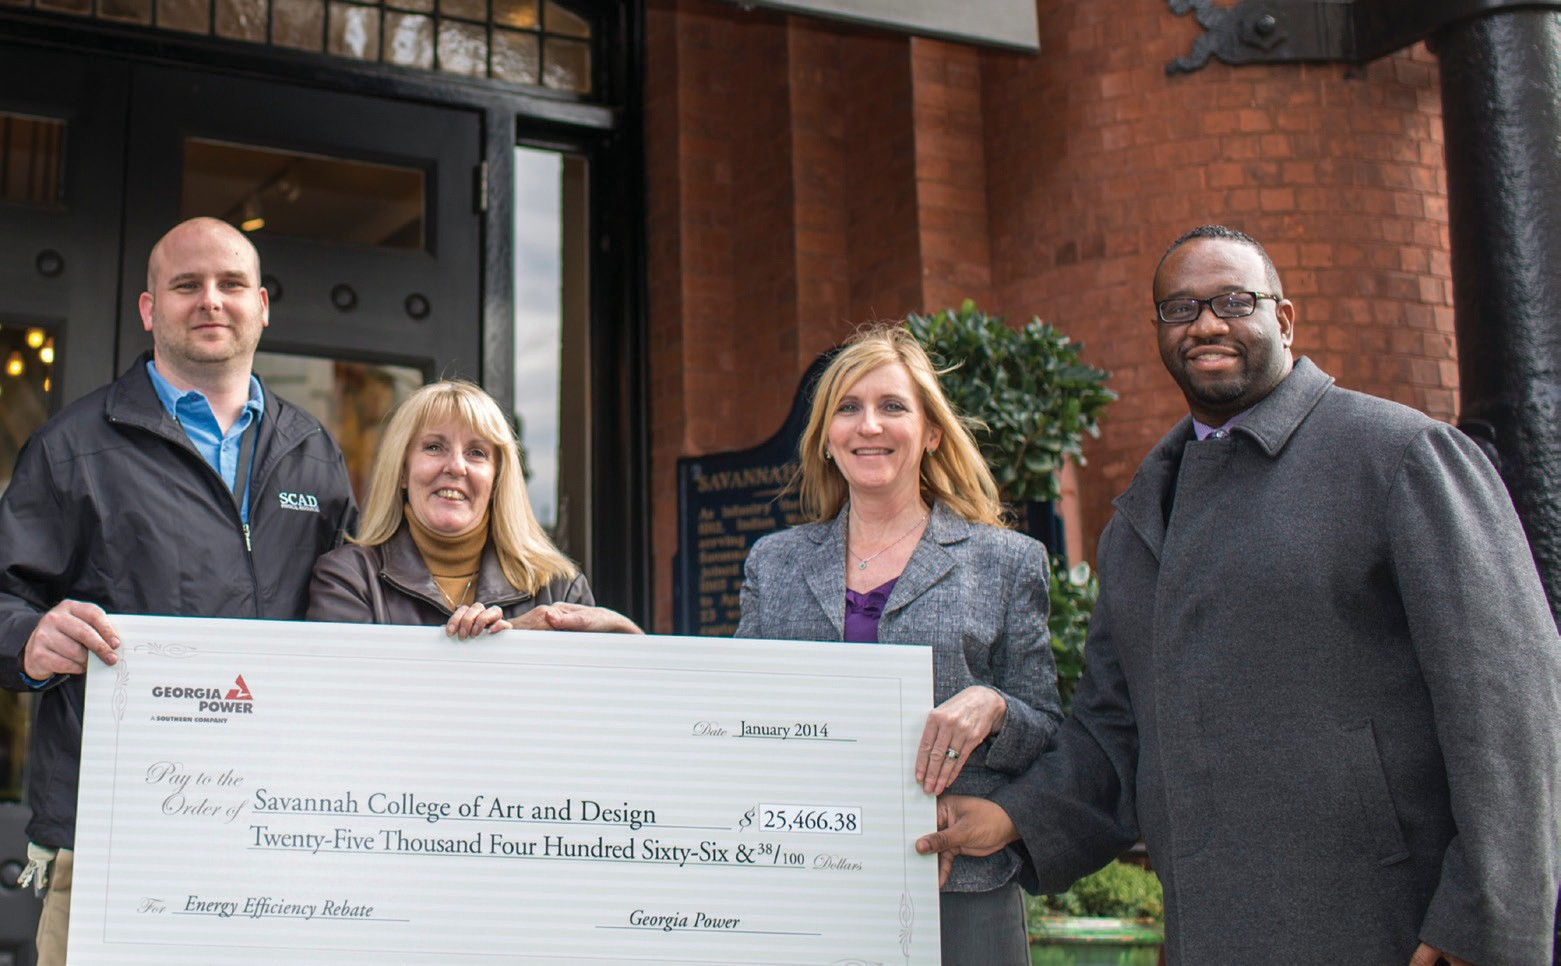 Left to right: Robin Screen and Helen Morgan from the Physical Resources team at SCAD and Alethia Zadach and JaMarcus Brewer from Georgia Power Company.